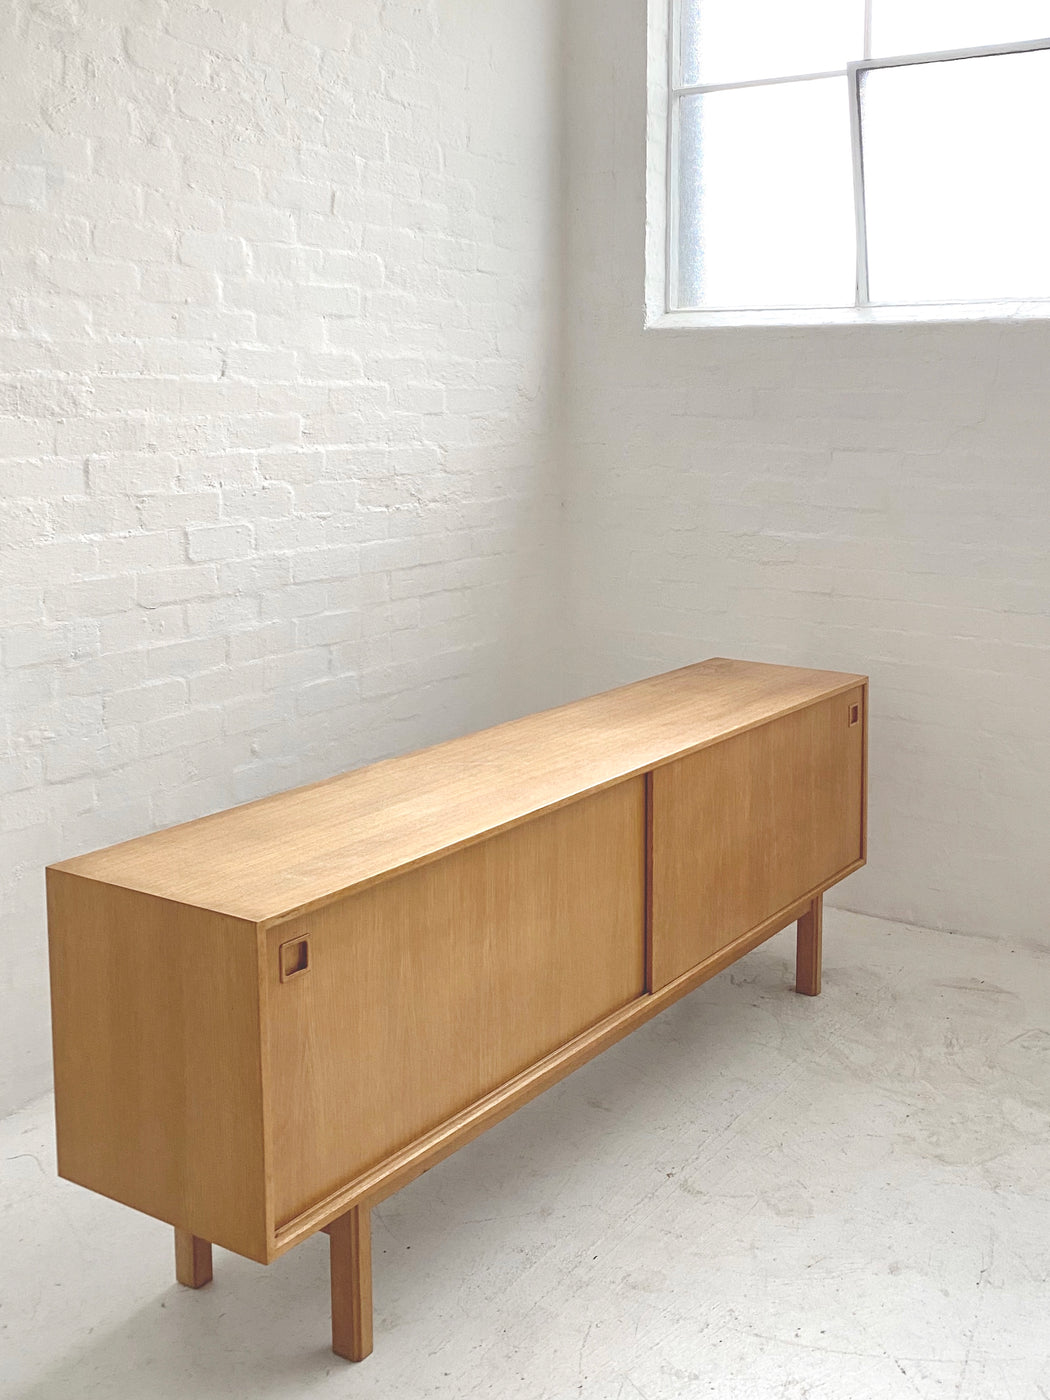 Omann Jun 'Model 21' Sideboard